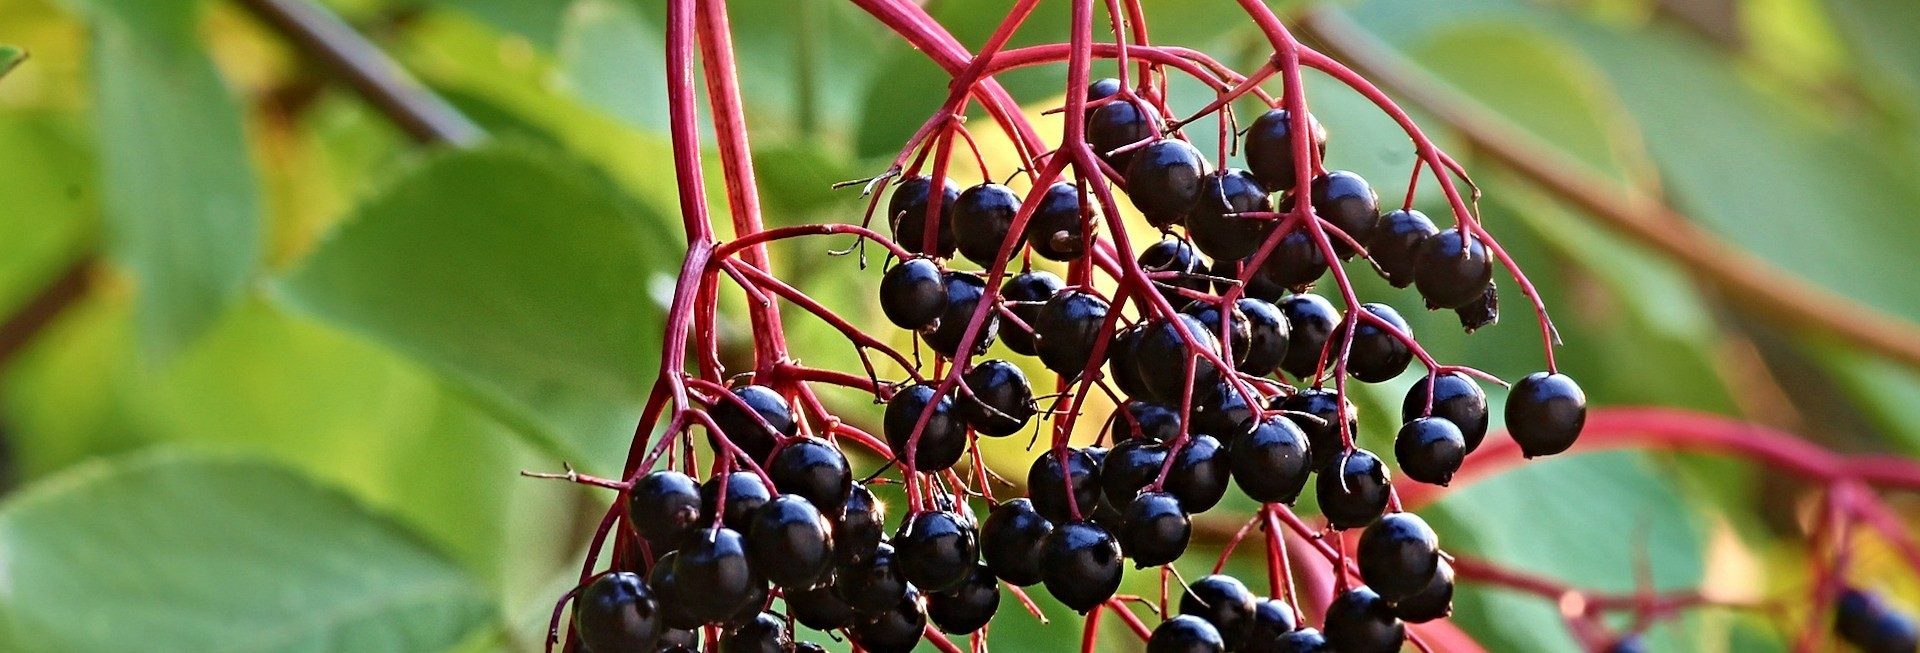 Elderberry plant and fruits.